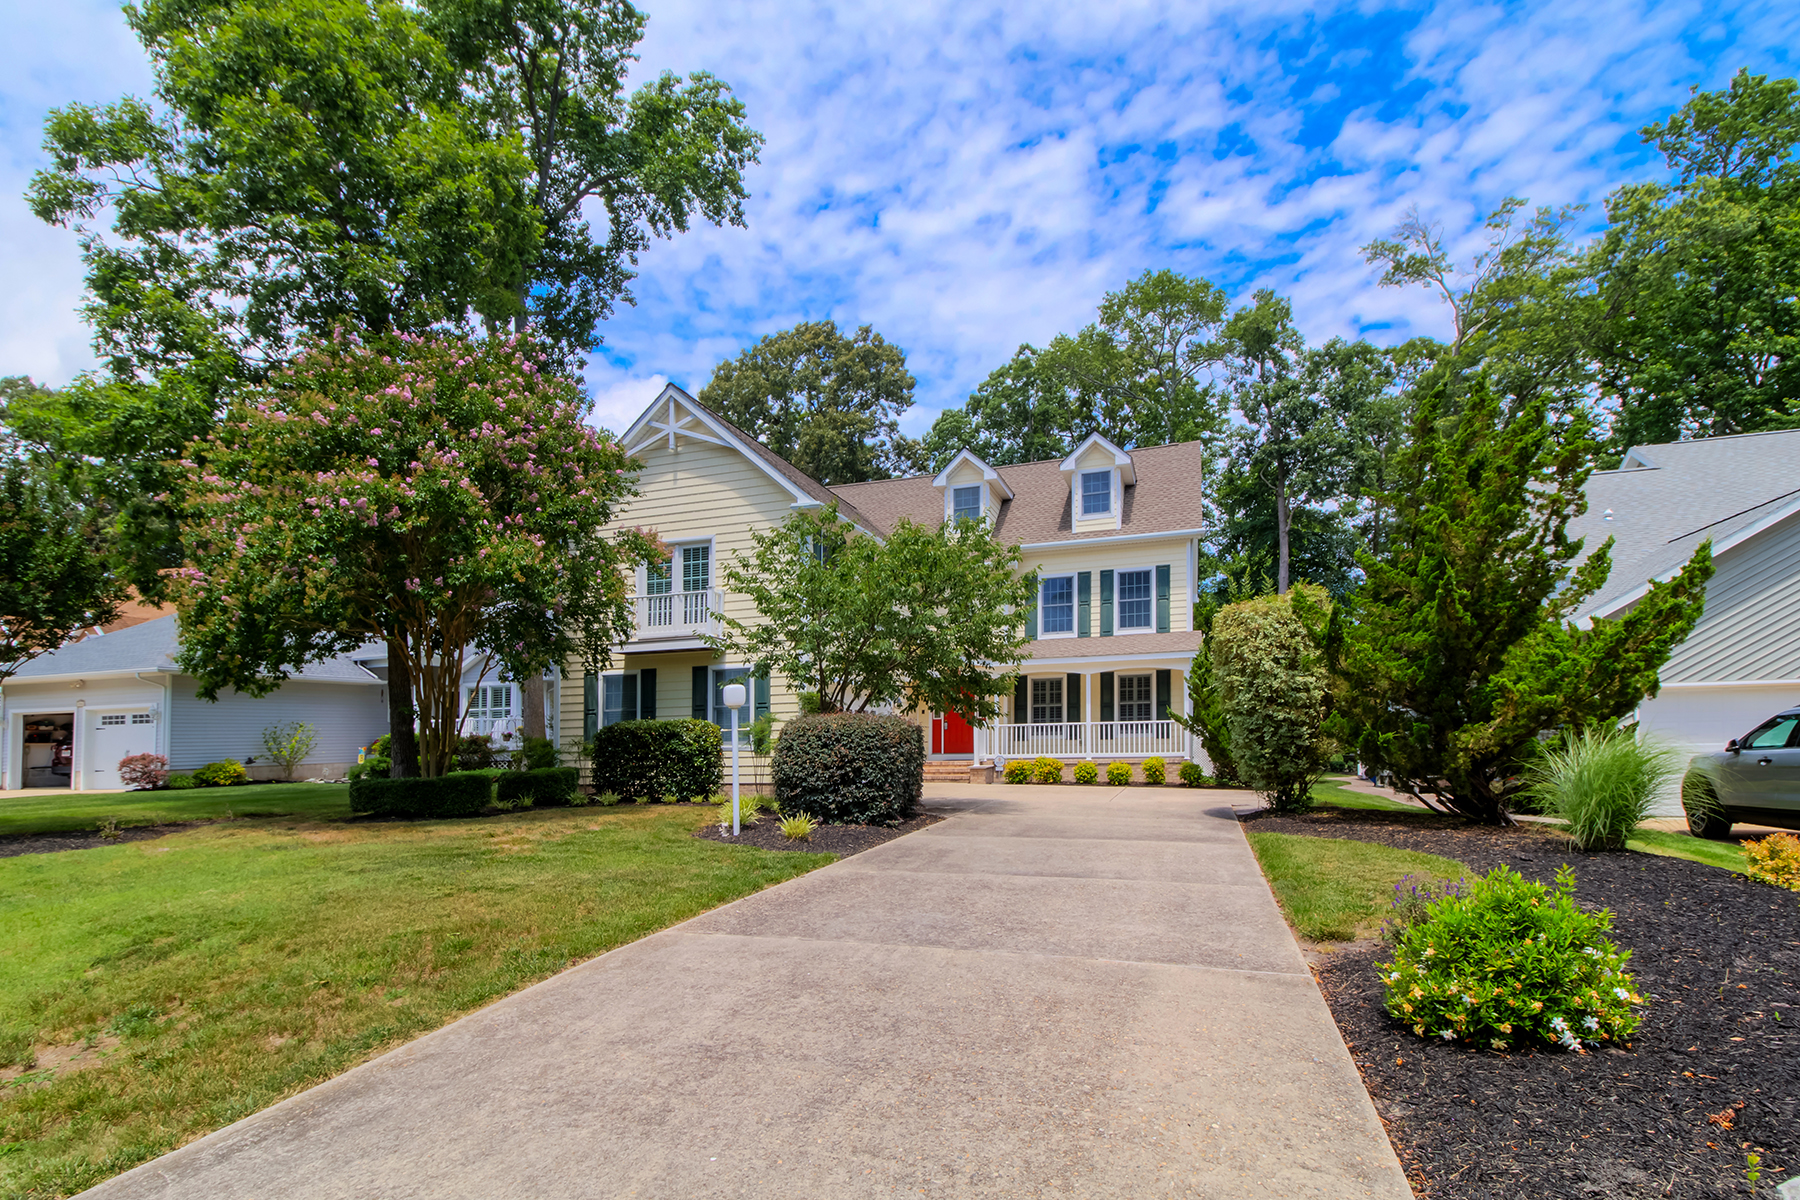 Single Family Home for Sale at 708 Fox Tail Dr , Bethany Beach, DE 19930 708 Fox Tail Dr, Bethany Beach, Delaware 19930 United States